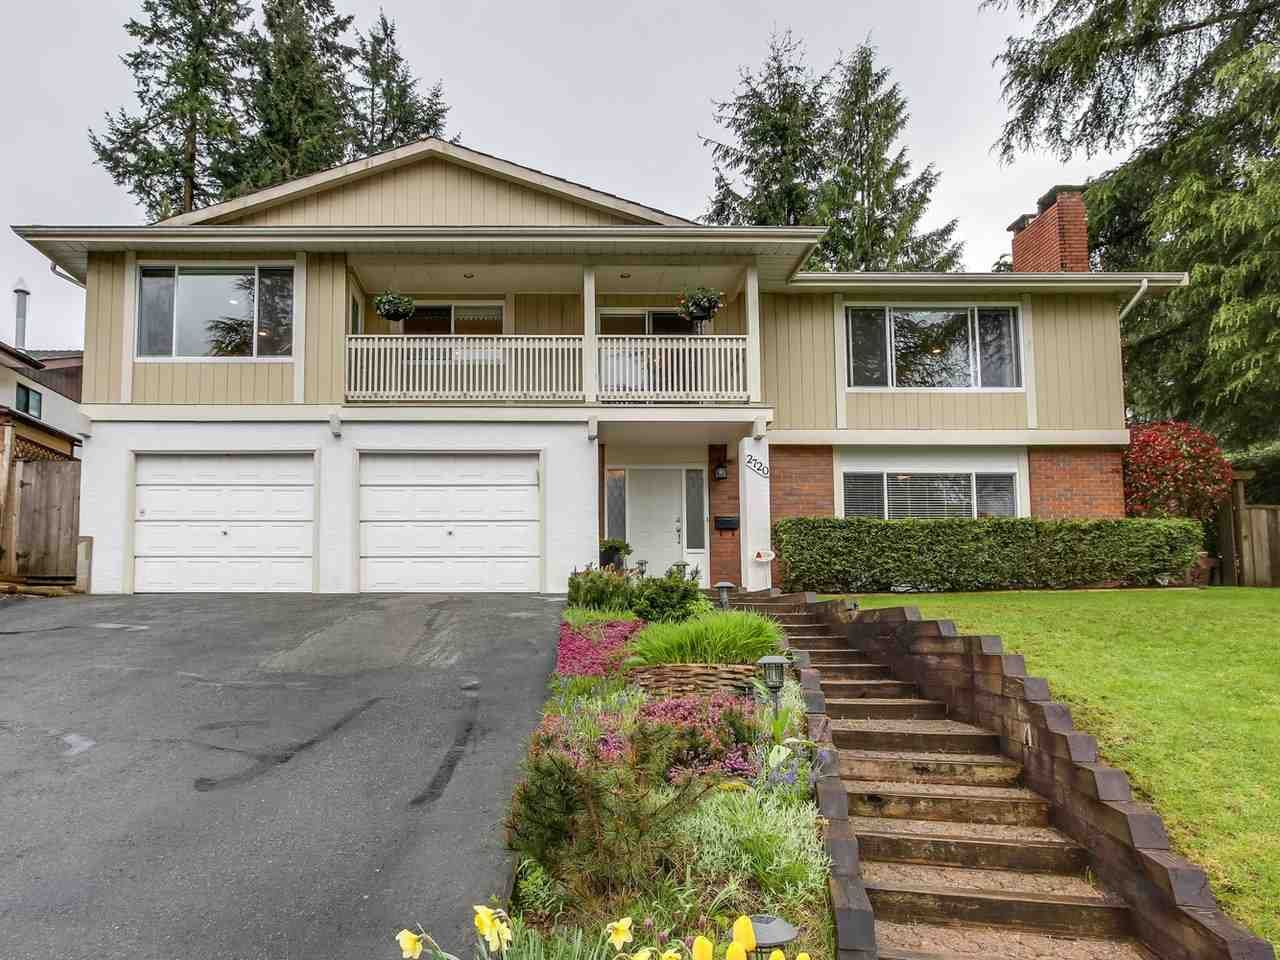 Main Photo: 2720 HAWSER AVENUE in Coquitlam: Ranch Park House for sale : MLS®# R2161090